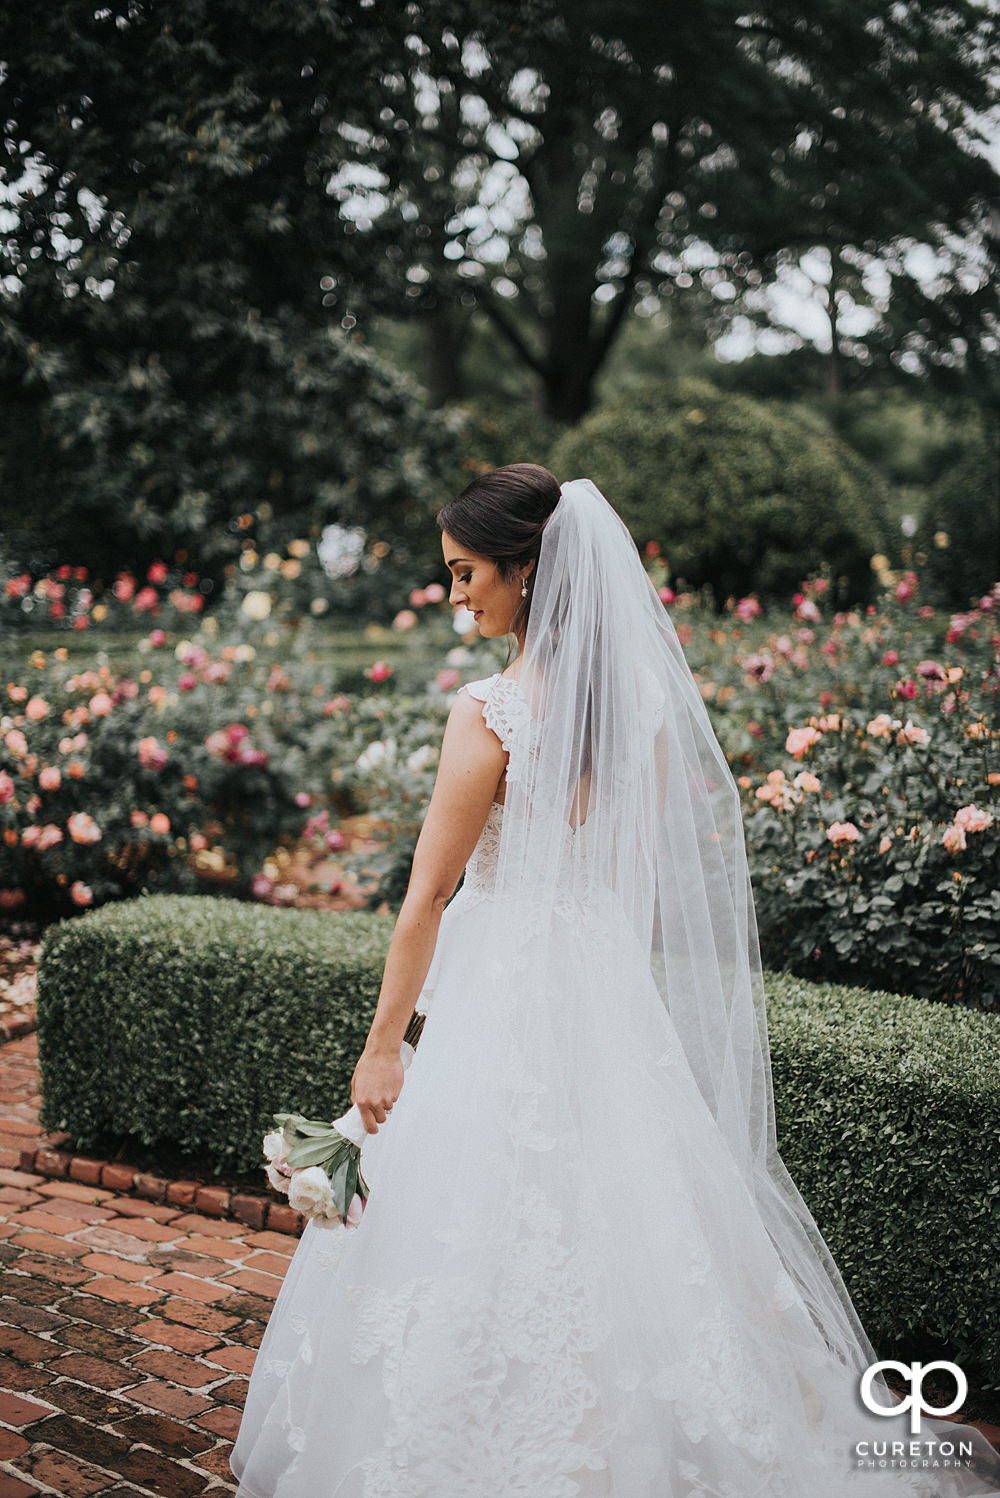 Bride looking at her flowers with a backdrop of roses.